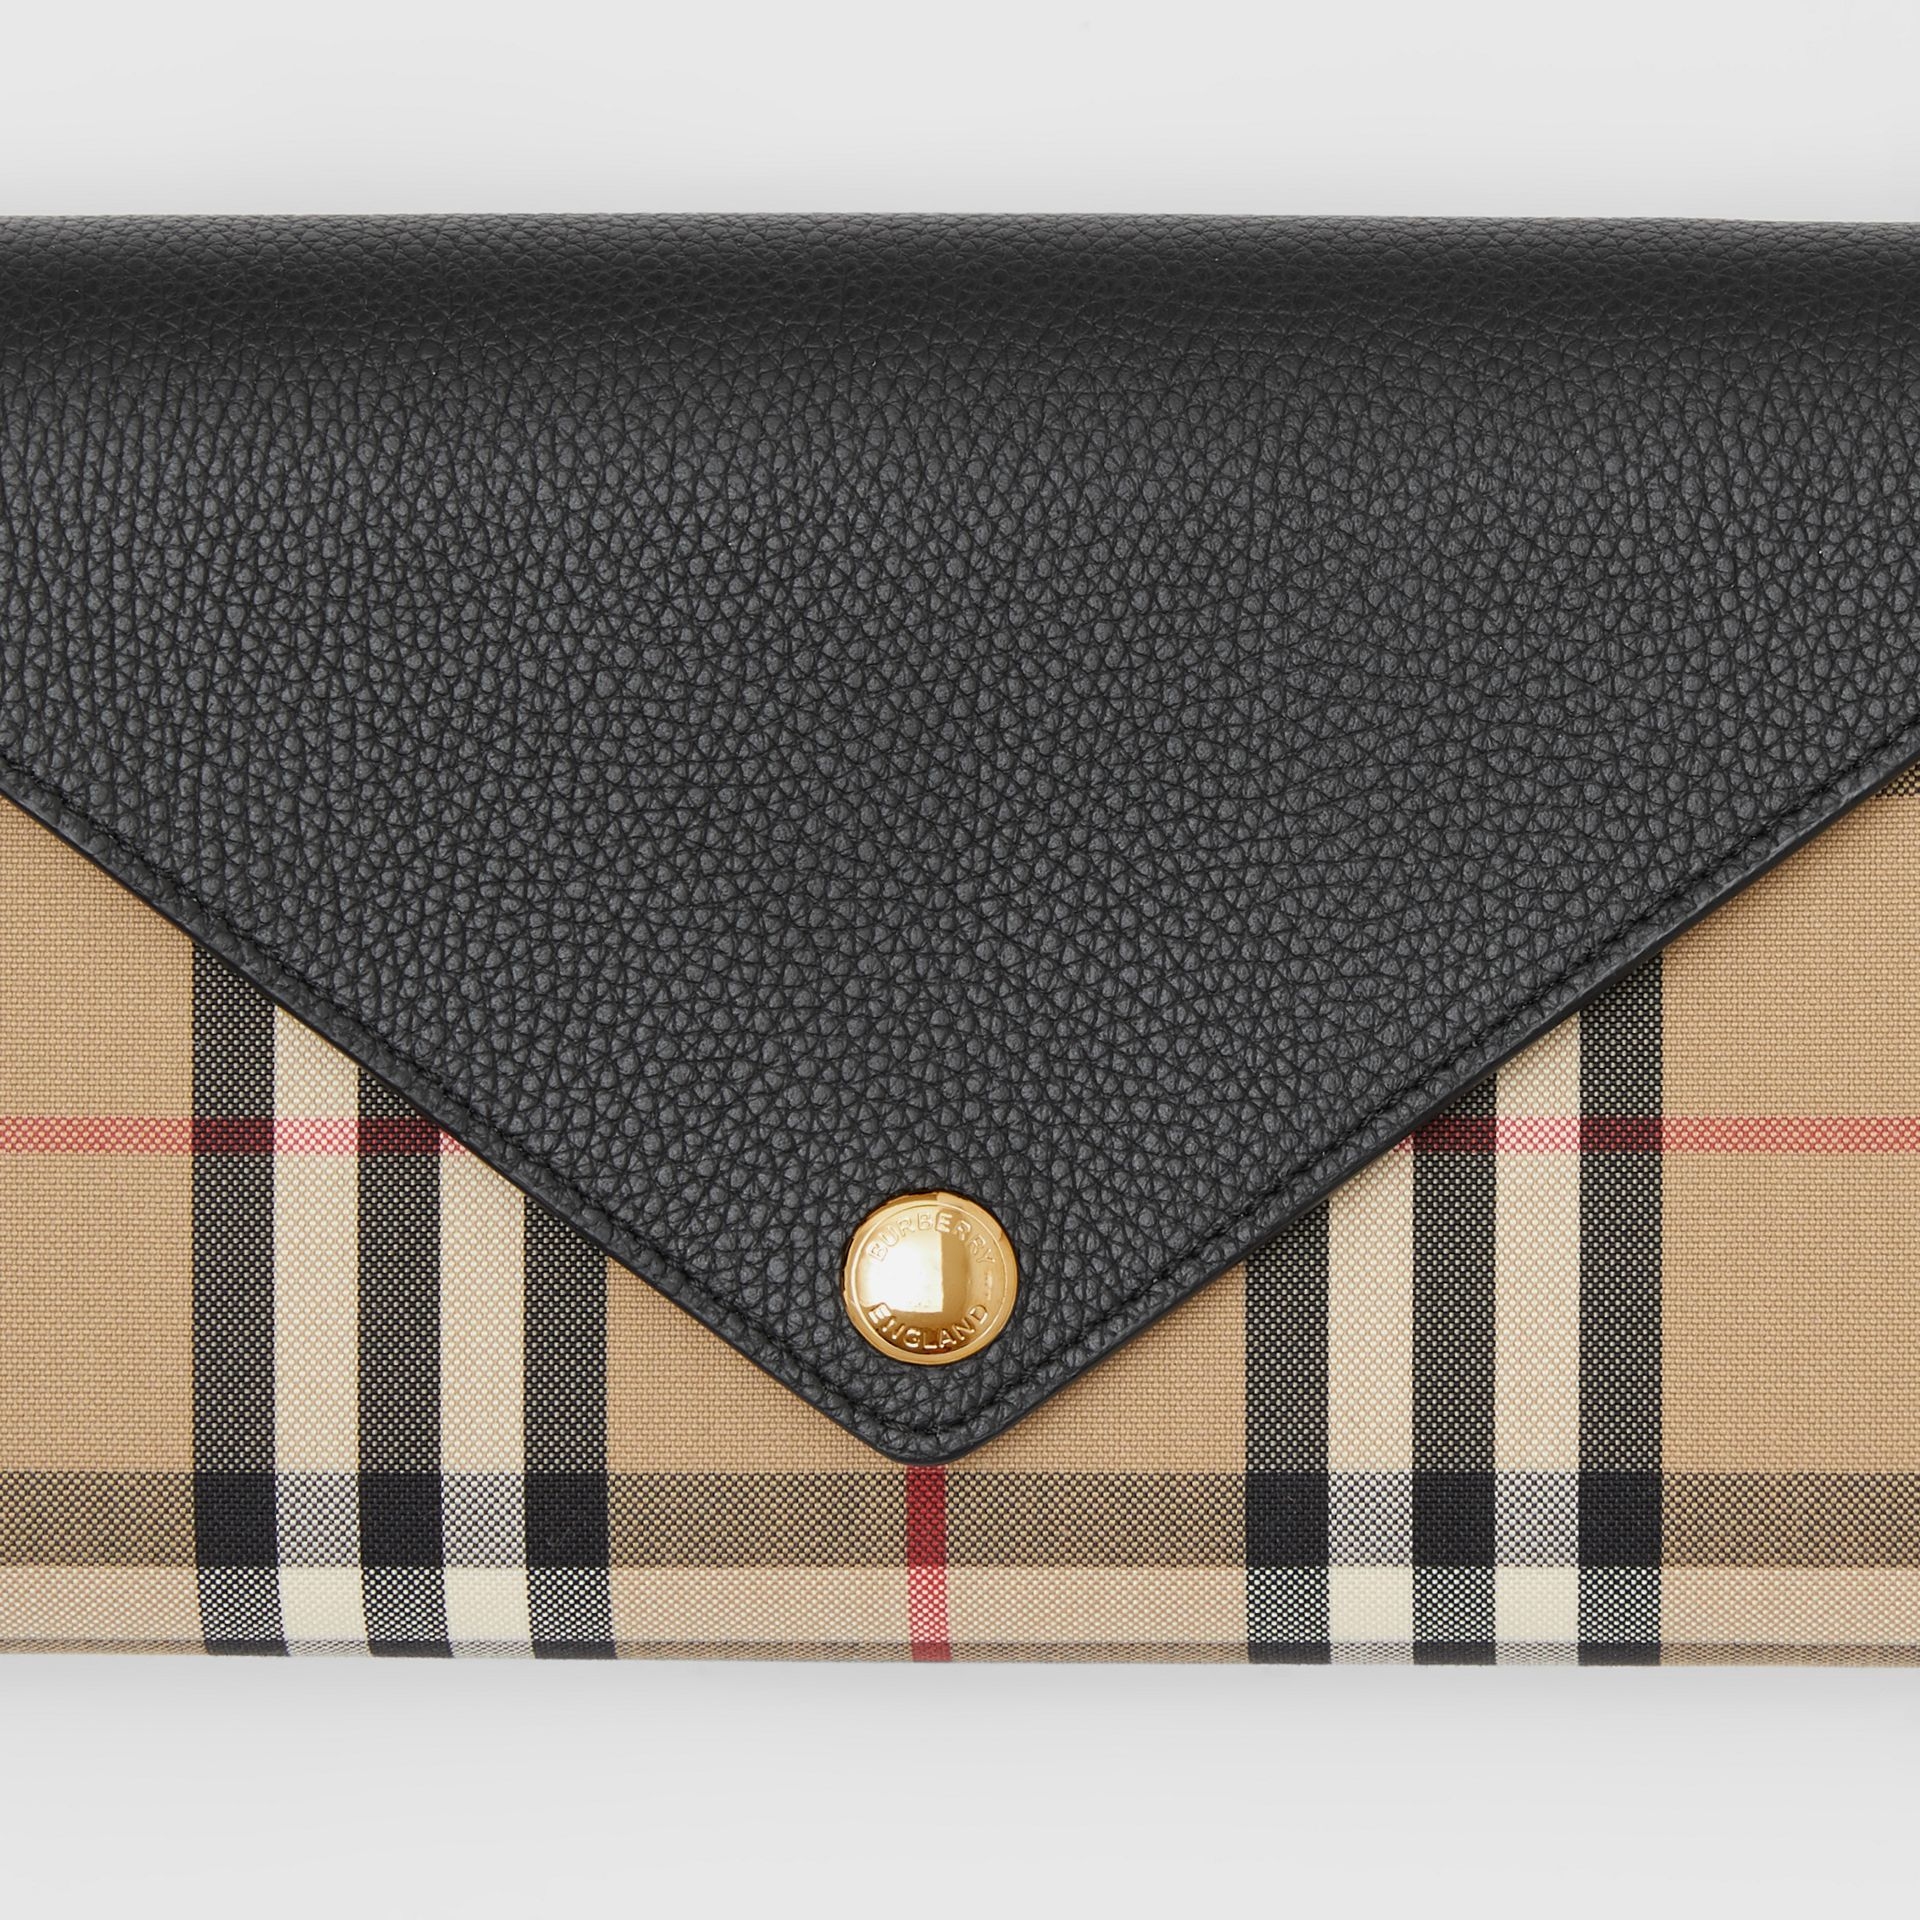 Vintage Check and Leather Wallet with Detachable Strap in Black - Women | Burberry - gallery image 1